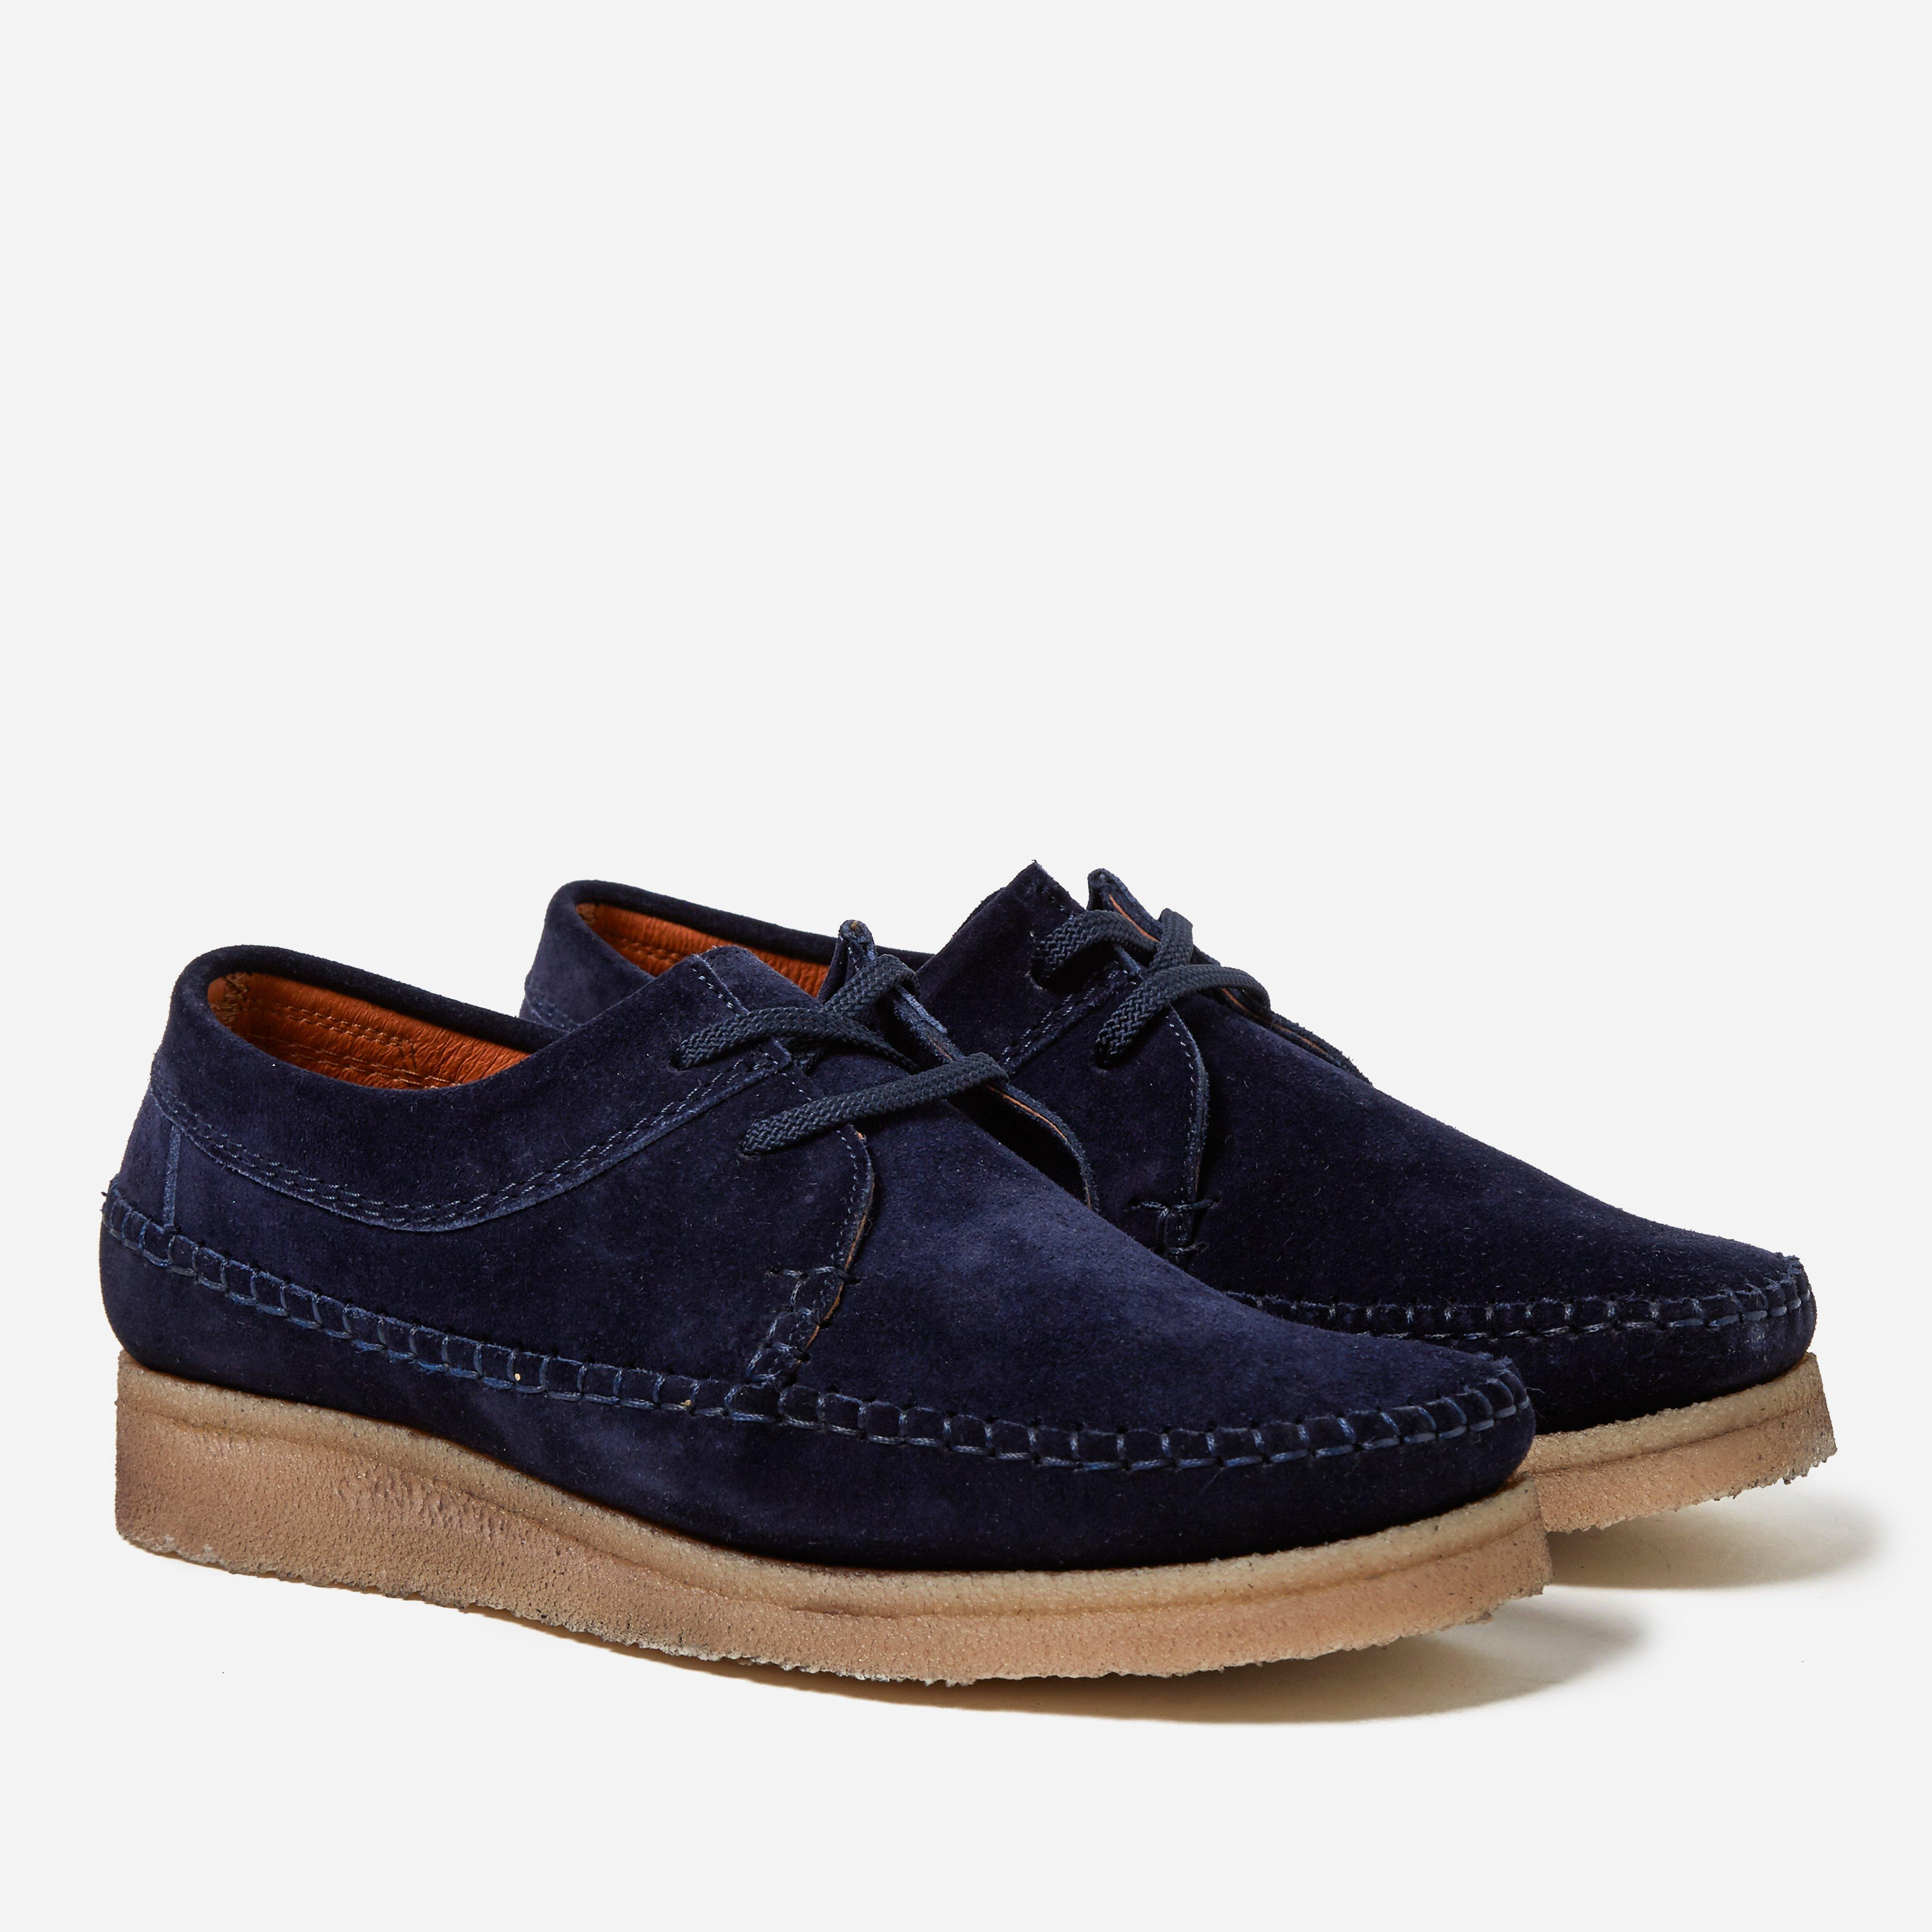 Padmore & Barnes M387 Willow Shoe Suede